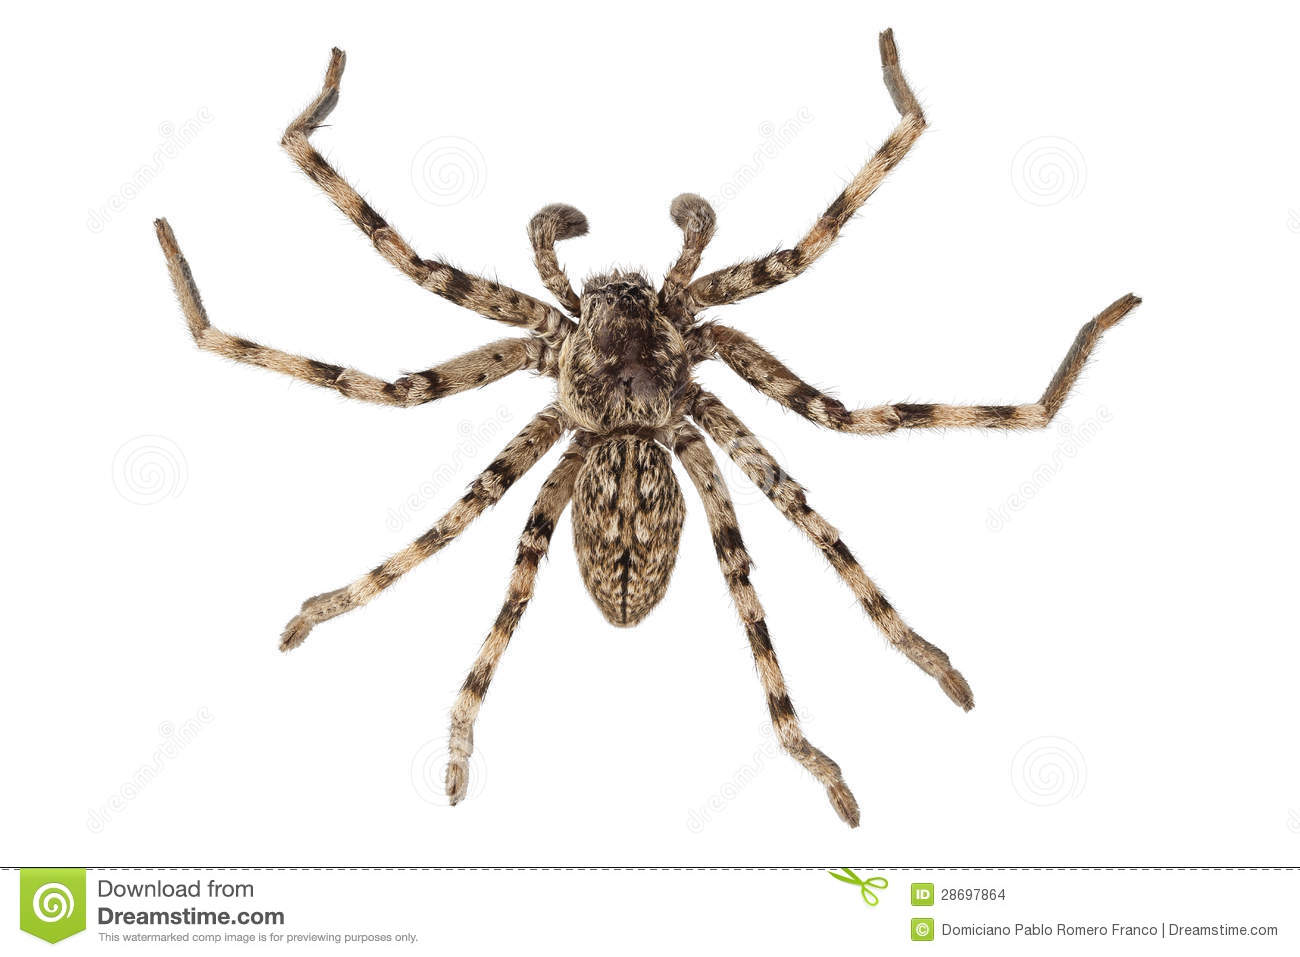 Wolf Spider clipart #8, Download drawings